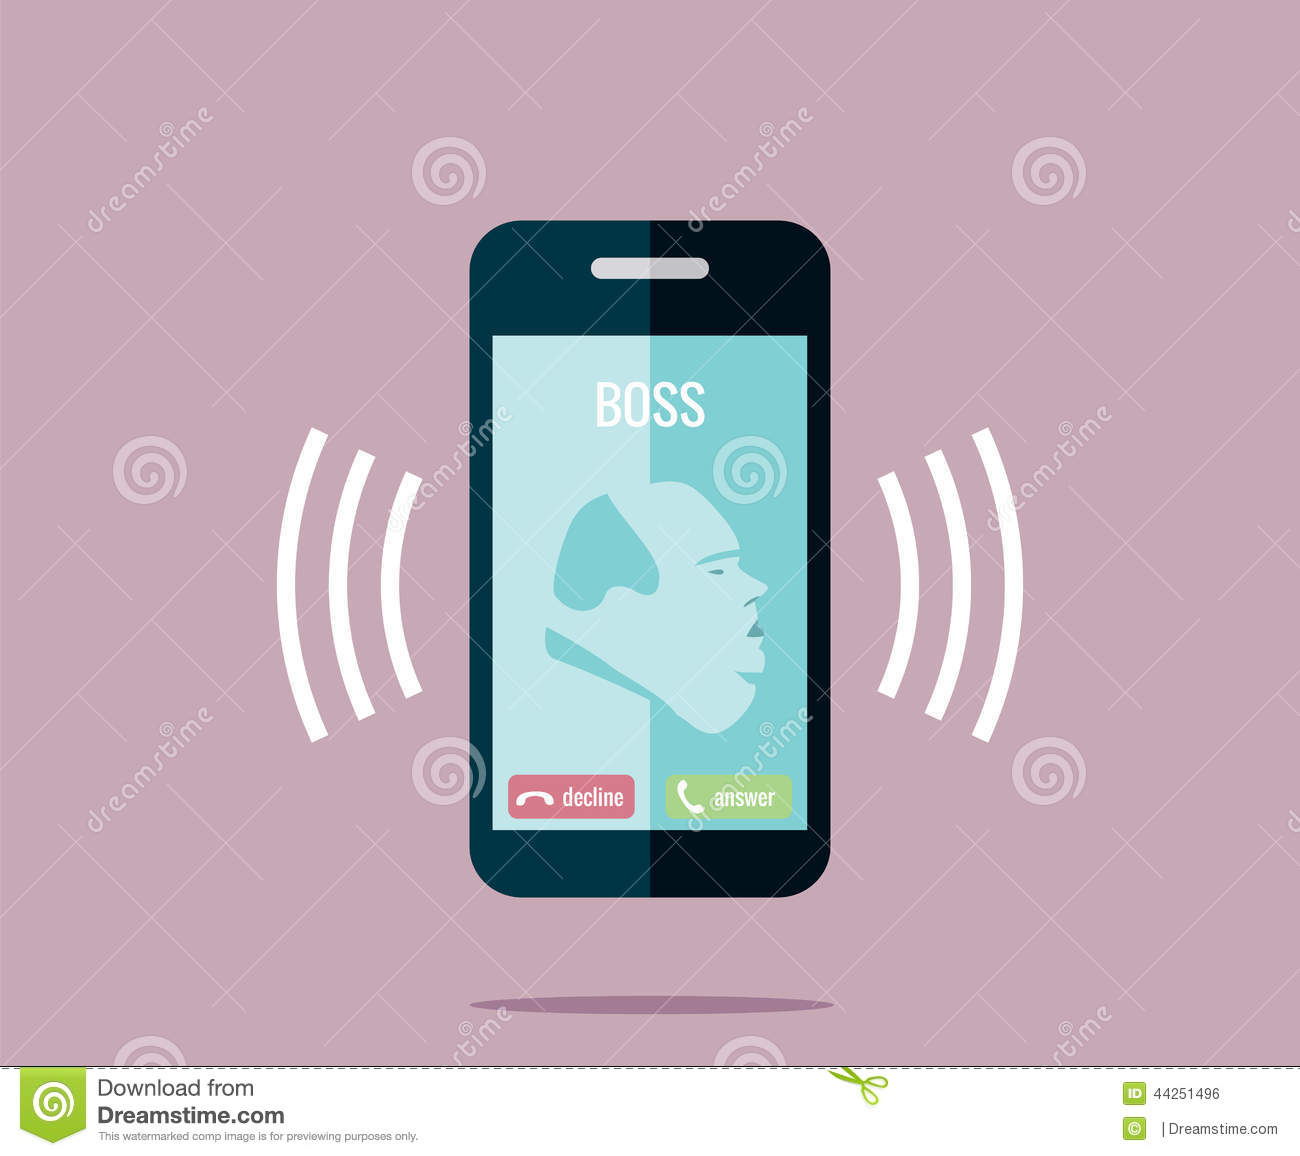 Drawing Of Fat A Ringing Mobile Phone Calling Call Vector The Boss Illustration - Boss With Stock On Stylised 44251496 Is